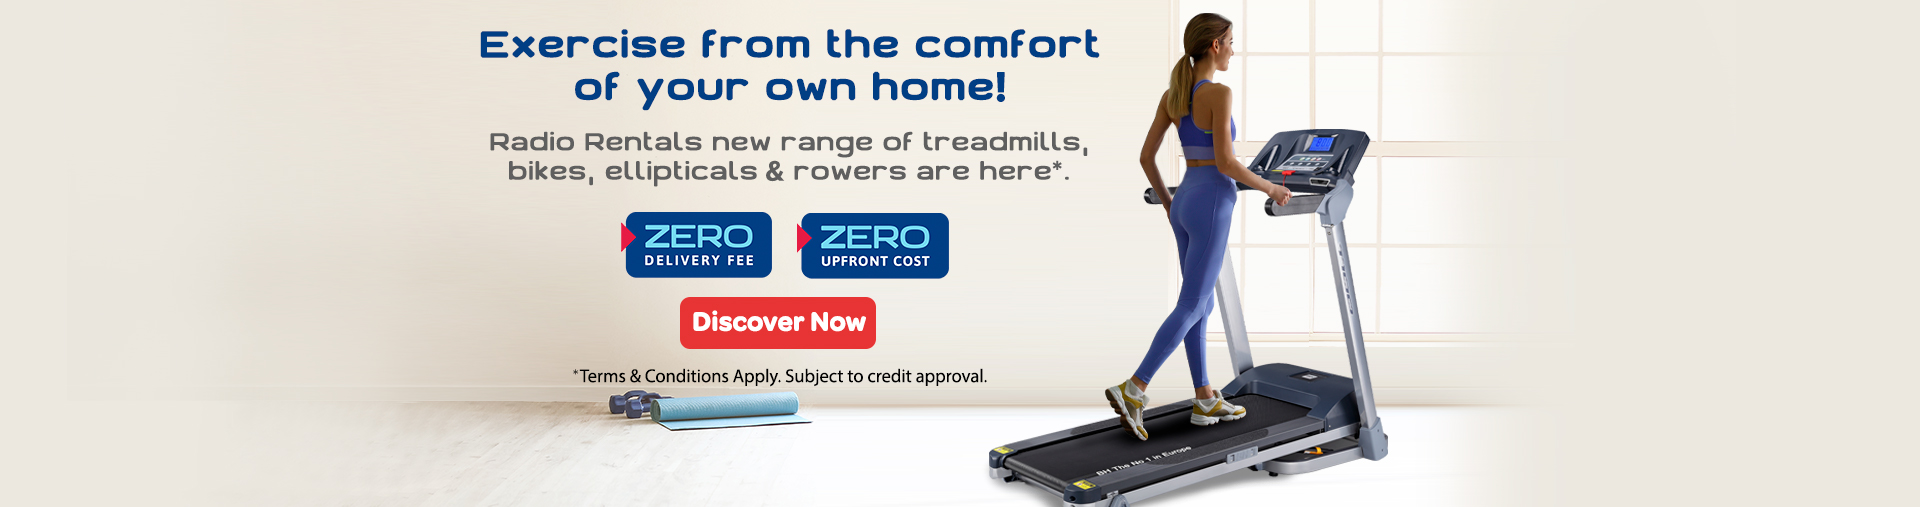 Exercise from the comfort of your own home!